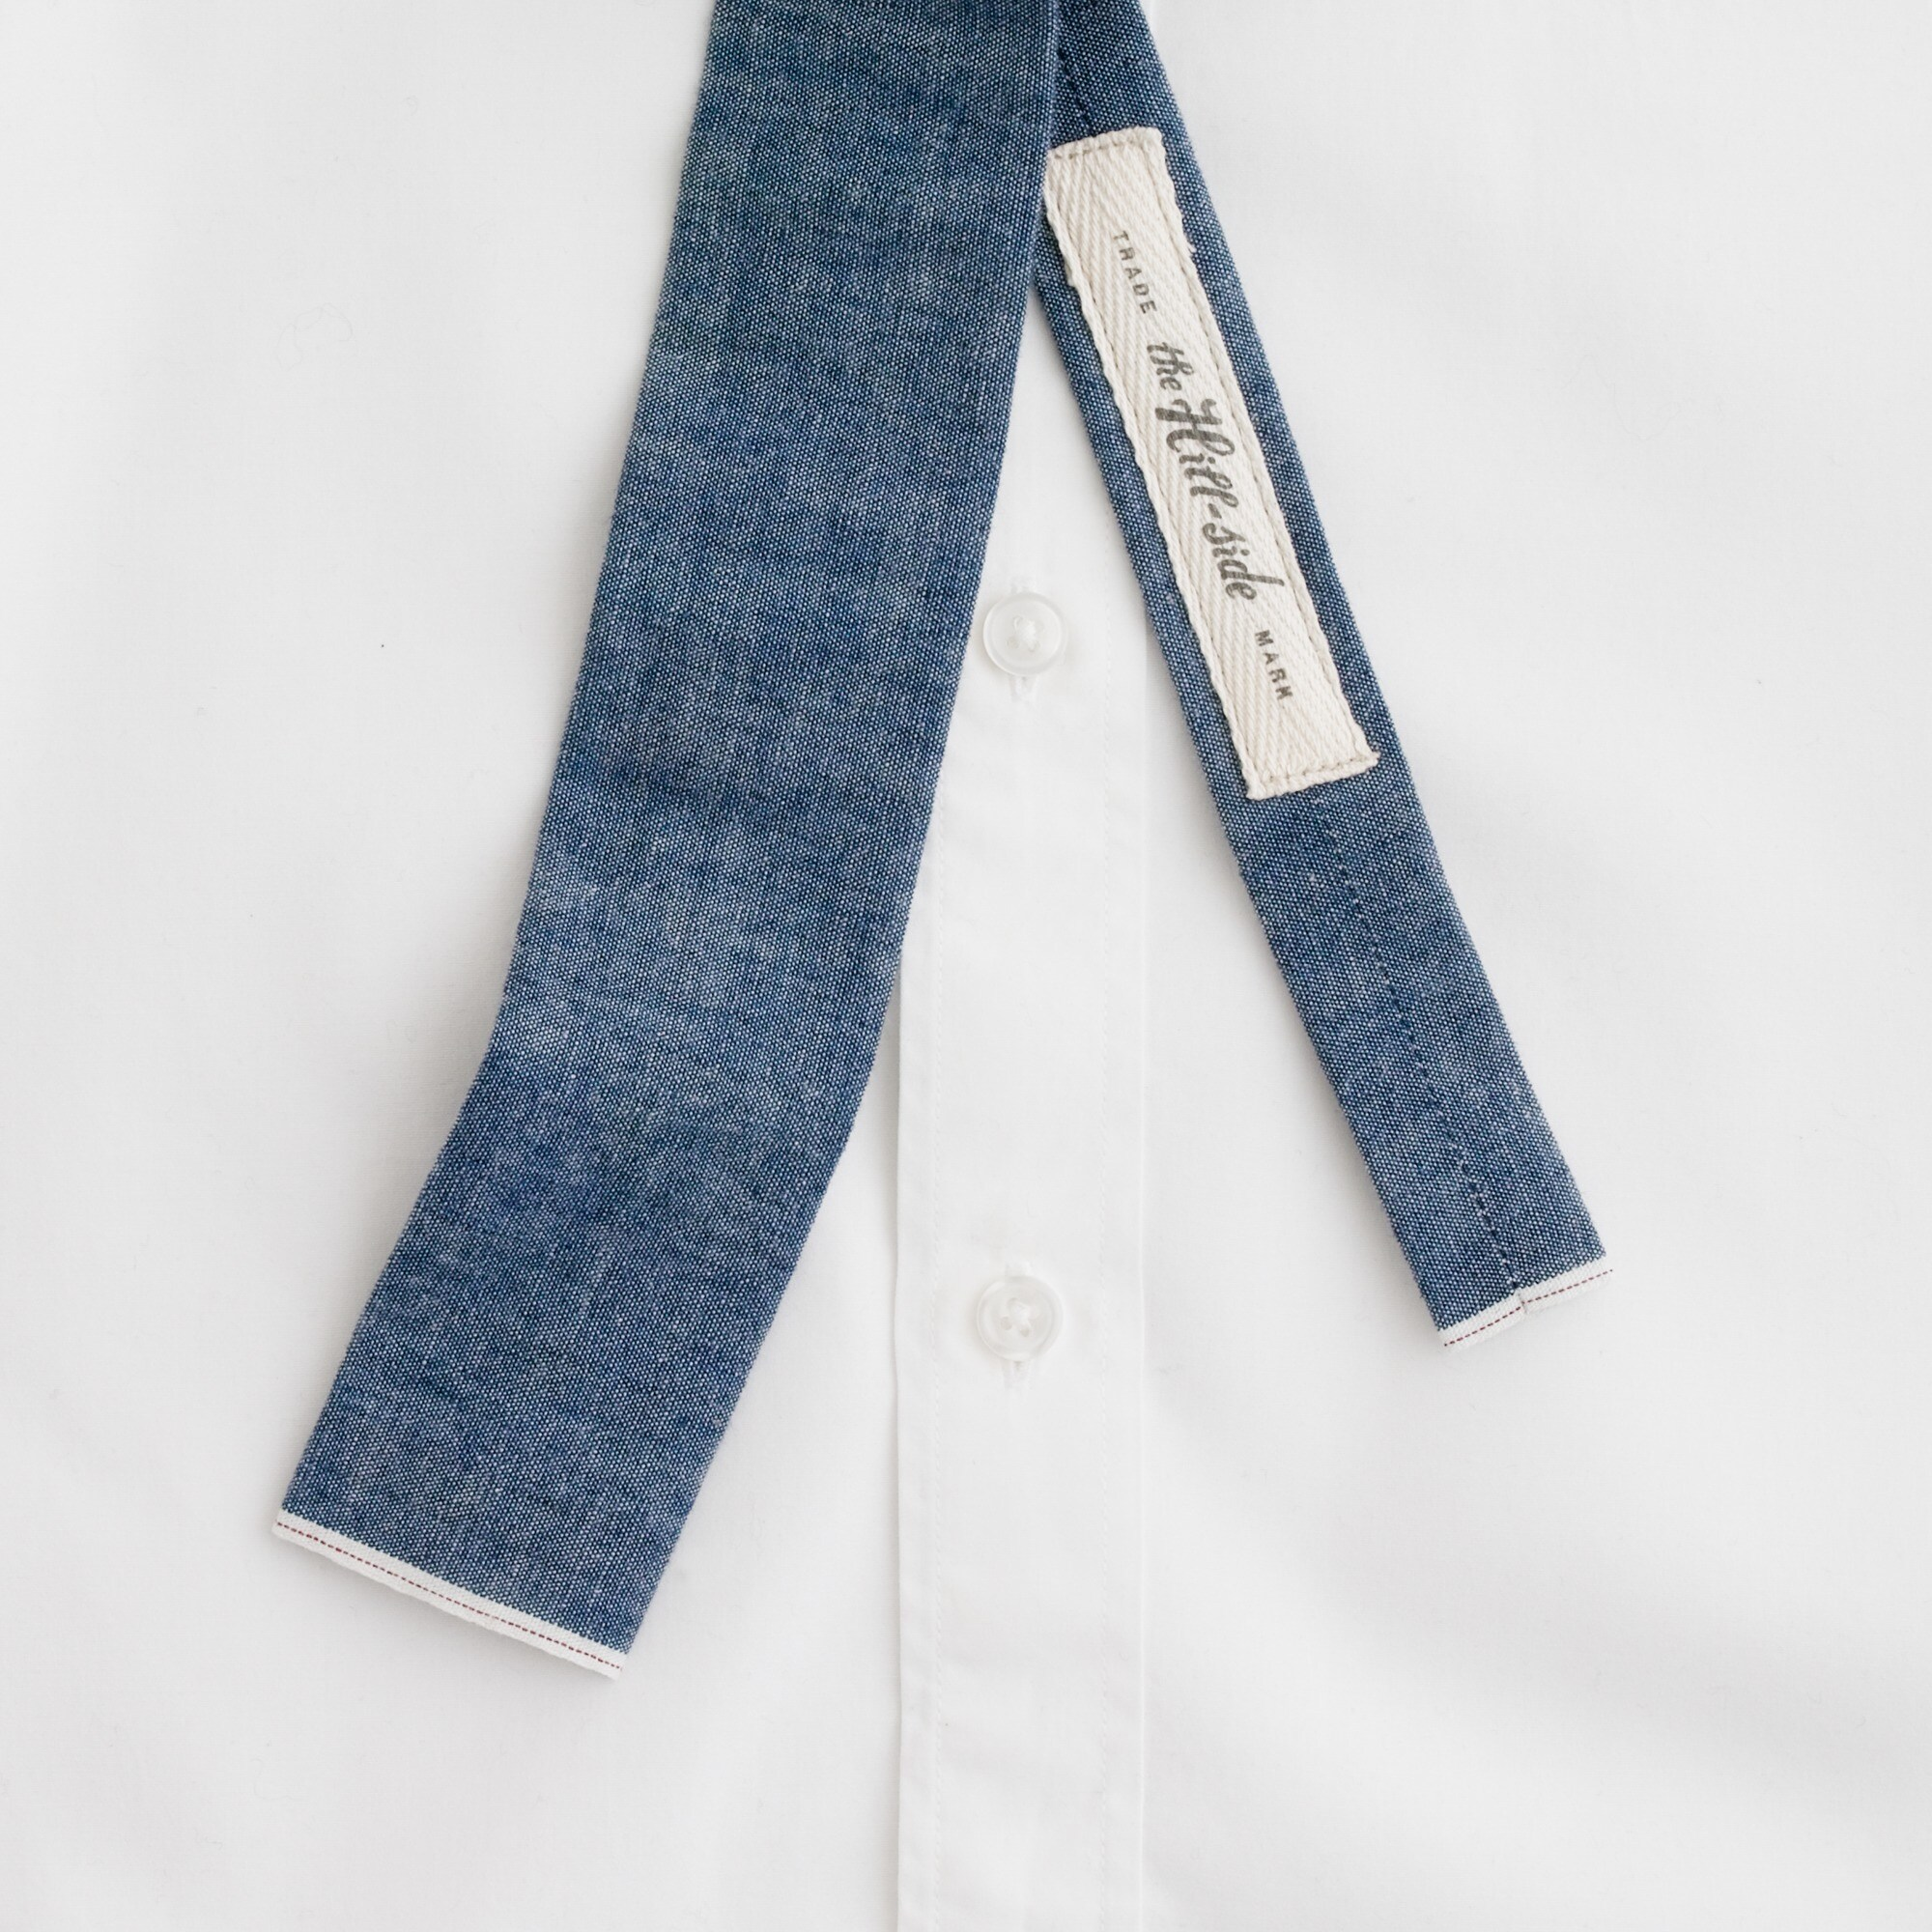 Image 3 for The Hill-side® Japanese selvedge chambray tie